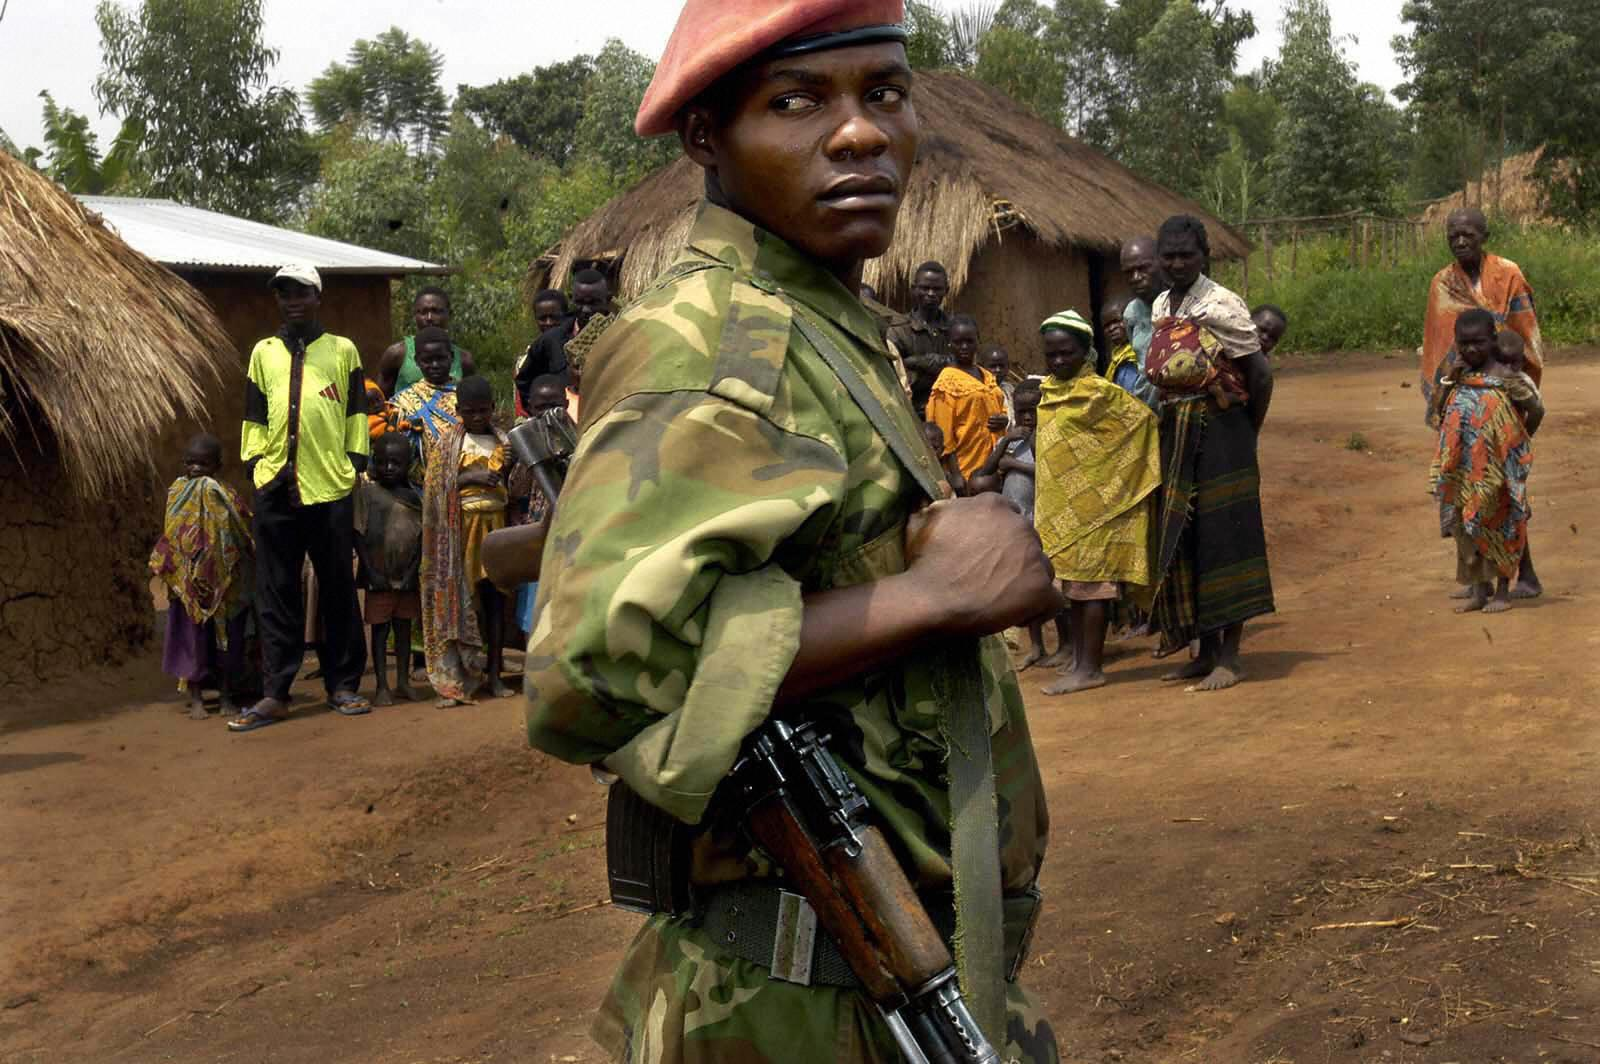 Union of Congolese Patriots soldier